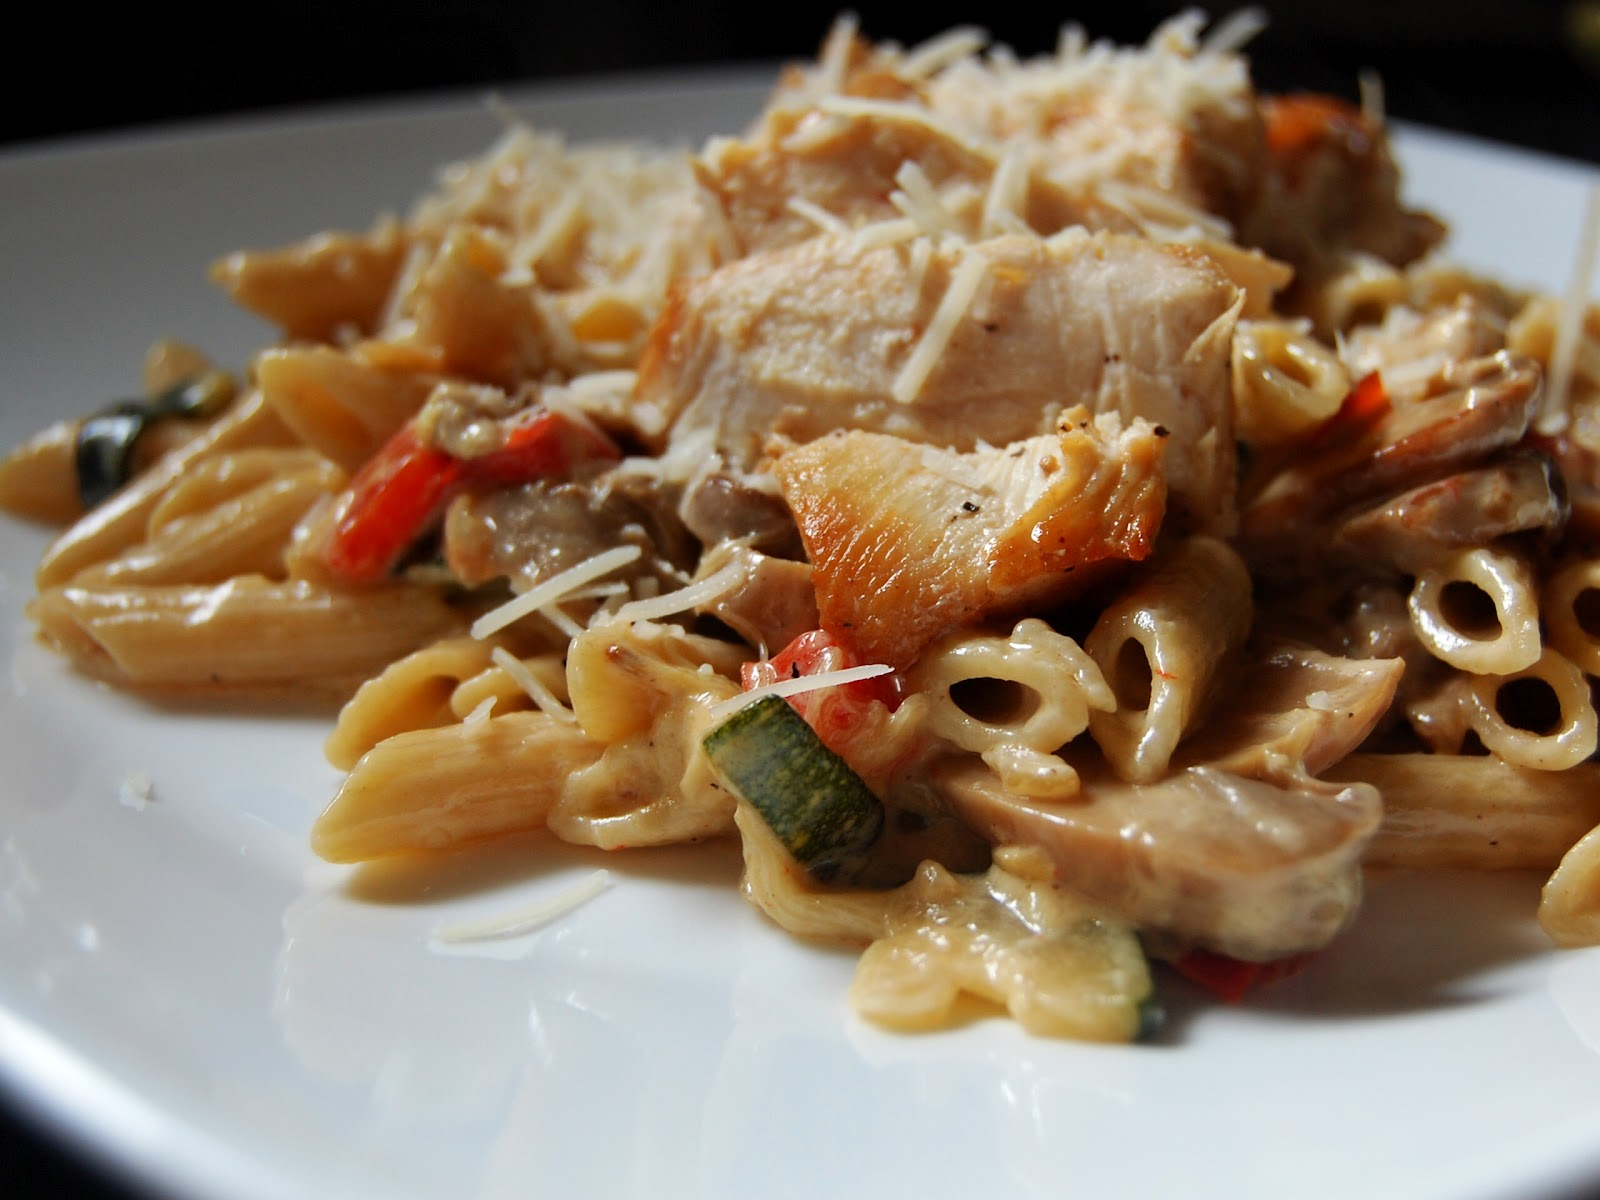 chicken+and+vegetable+pasta+with+roasted+garlic+cream+sauce.JPG